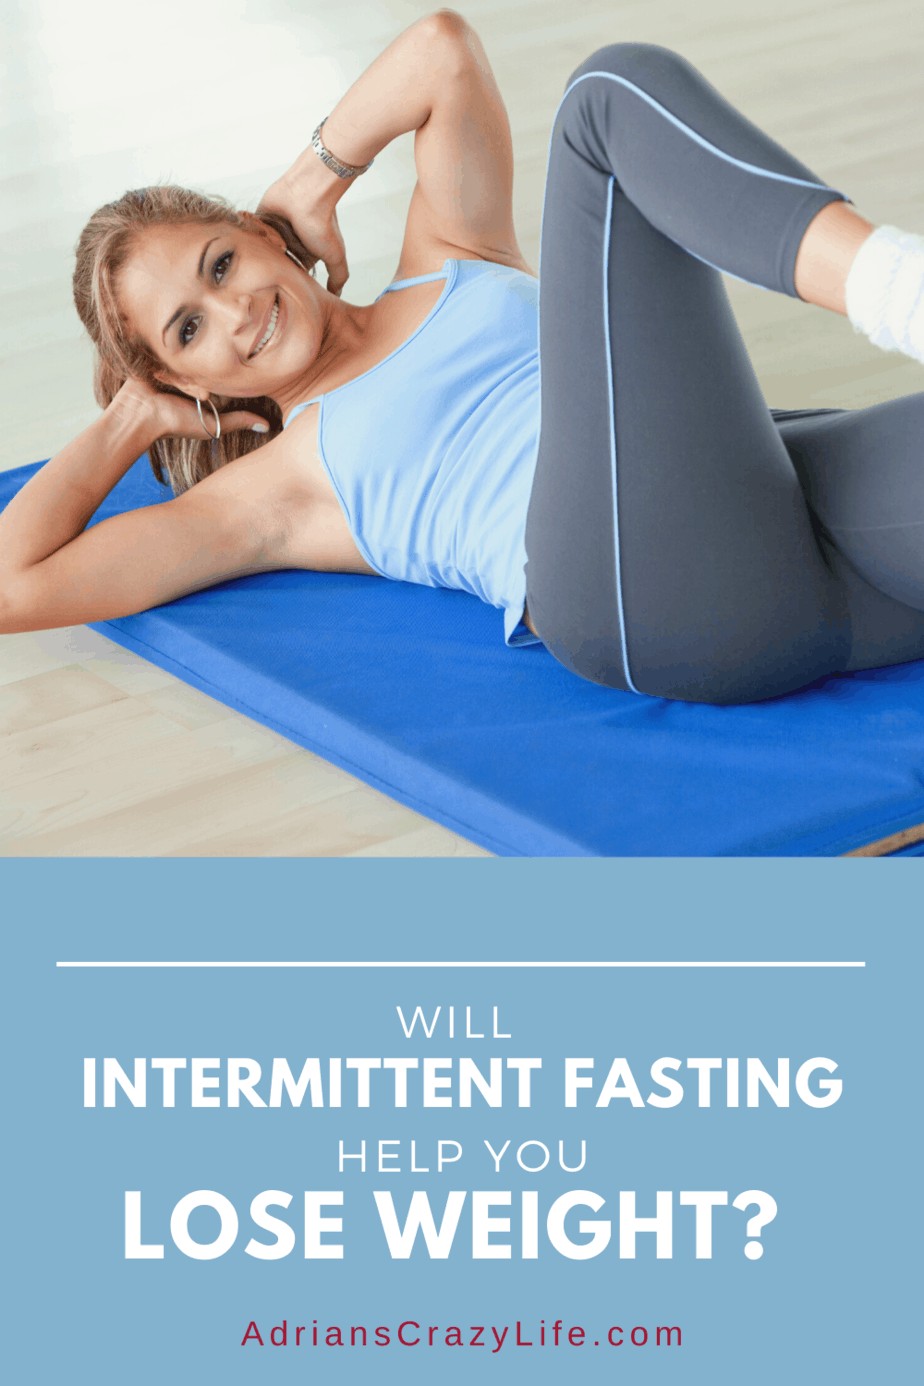 Why You Should Give Intermittent Fasting a Try